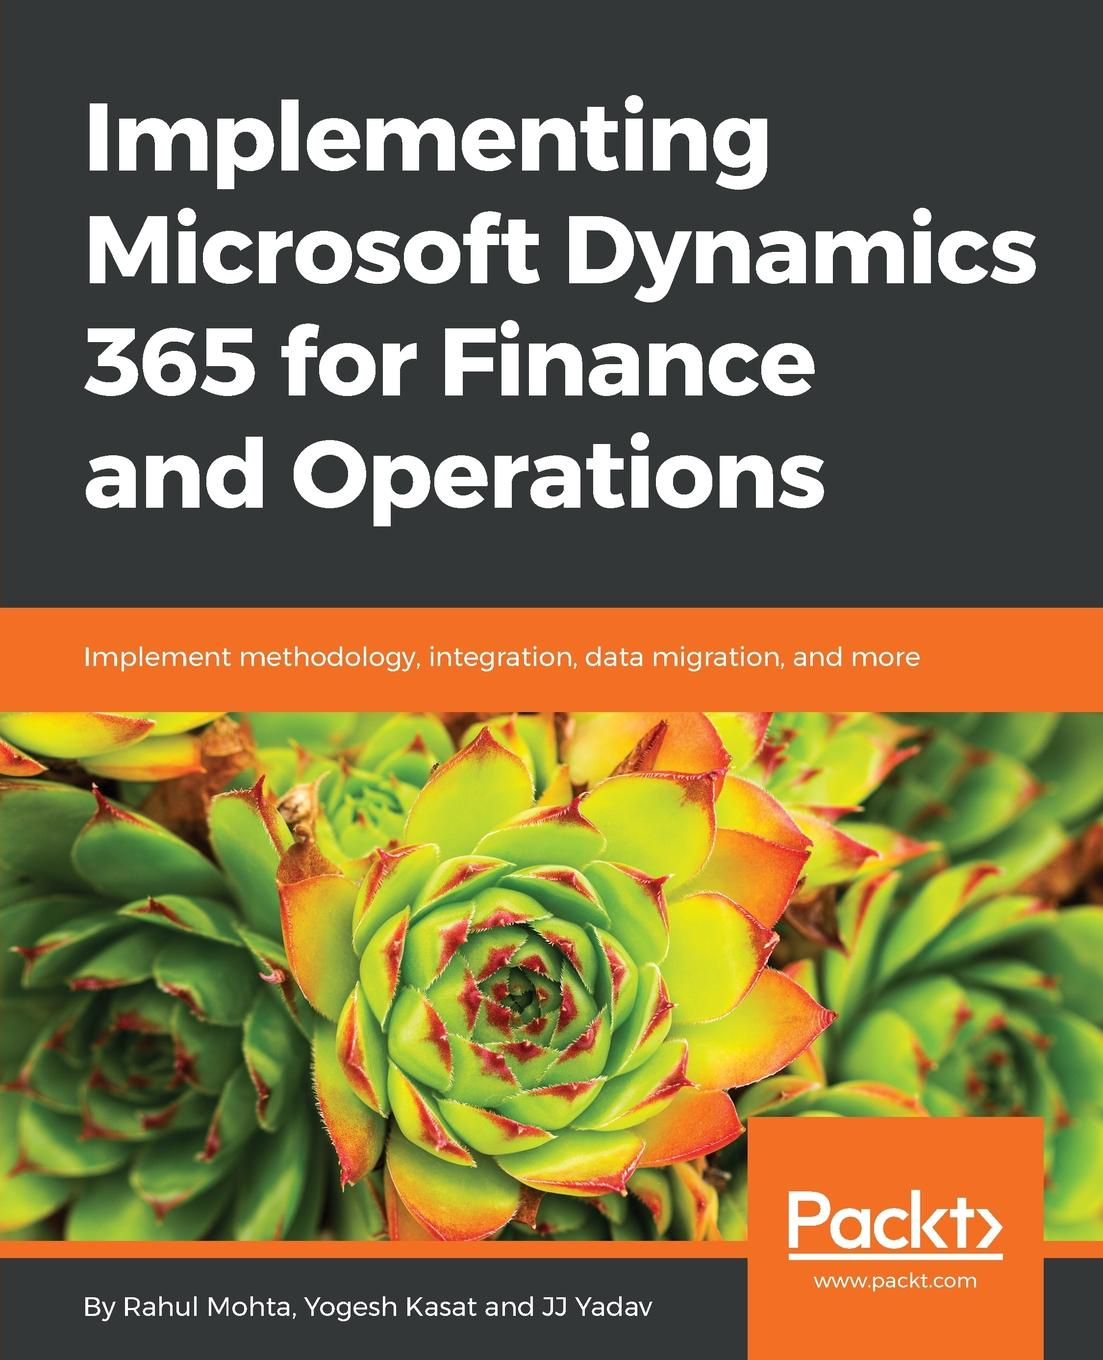 Rahul Mohta, Yogesh Kasat, JJ Yadav Implementing Microsoft Dynamics 365 for Finance and Operations kirt butler c multinational finance evaluating opportunities costs and risks of operations